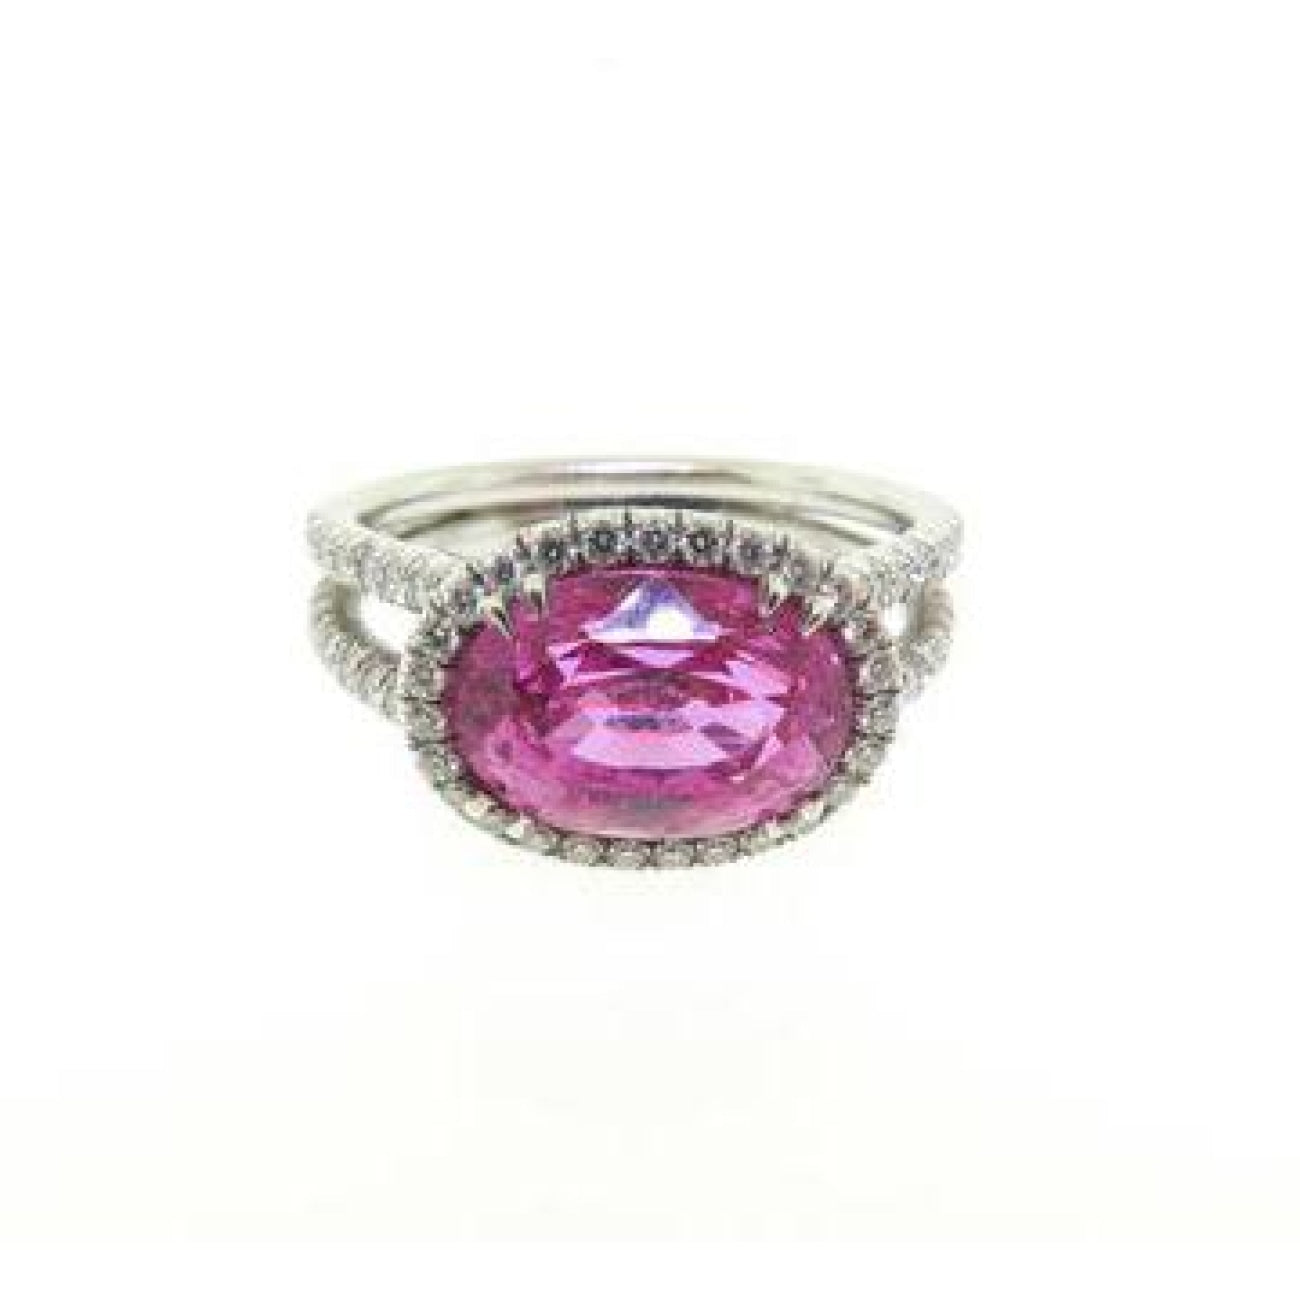 Manfredi Jewels Jewelry - Platinum Pink Sapphire and Diamond Ring | Manfredi Jewels